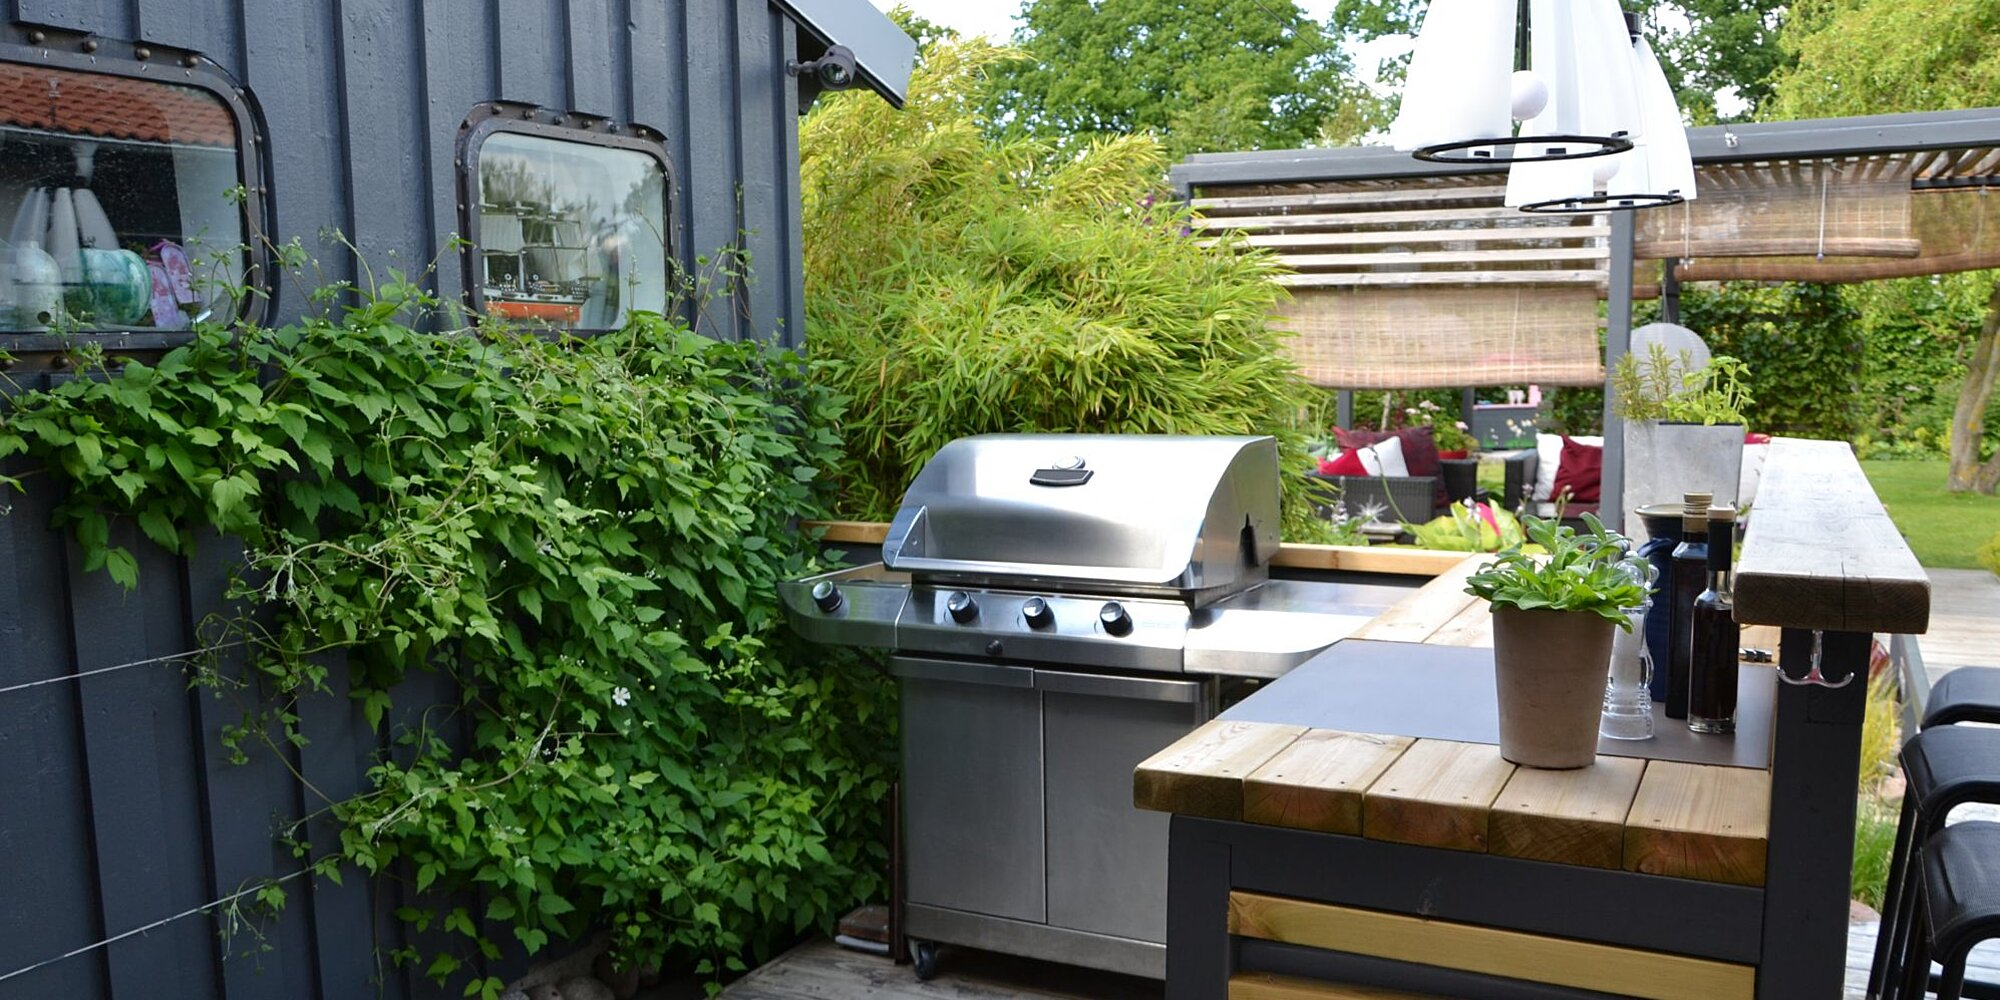 Have You Always Dreamed of Having an Outdoor Kitchen? Here's How to Create One at Home